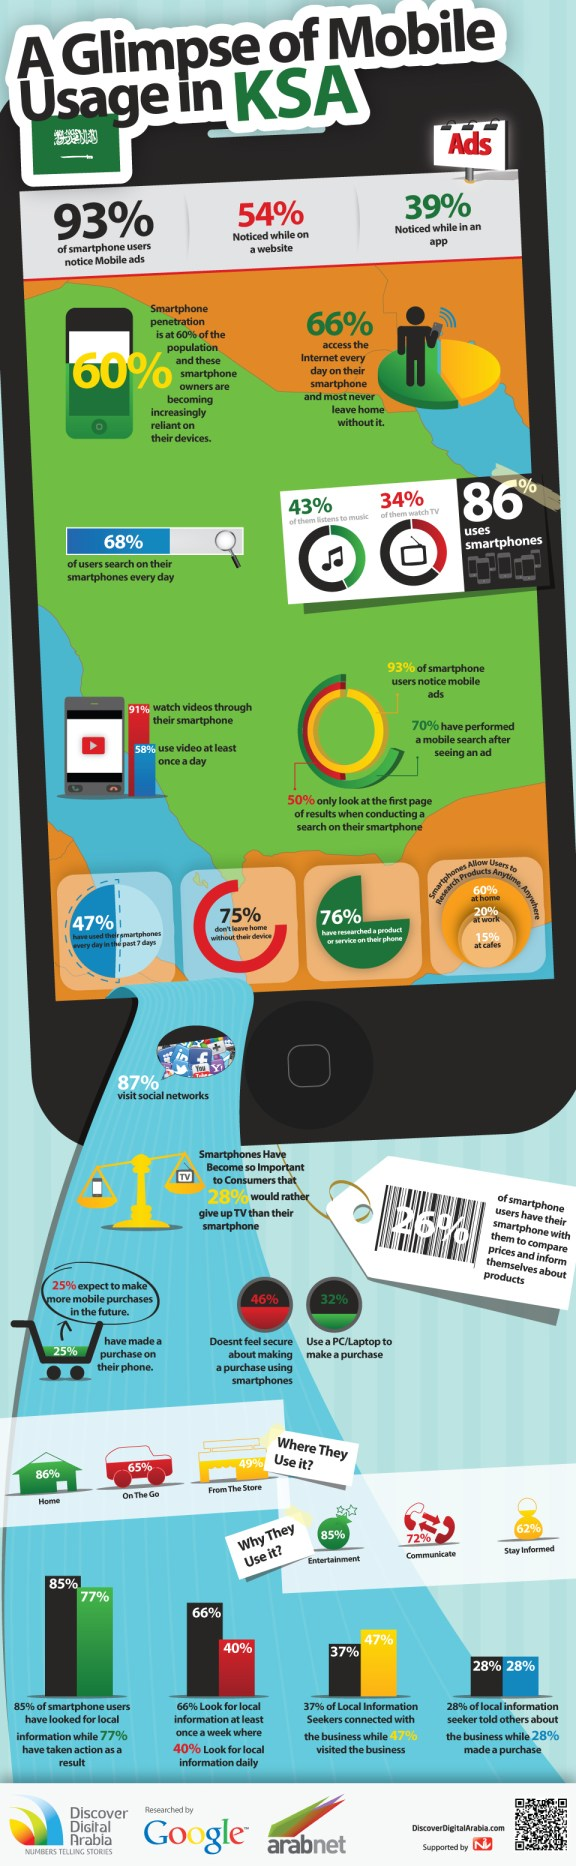 Mobile usage in KSA 2013